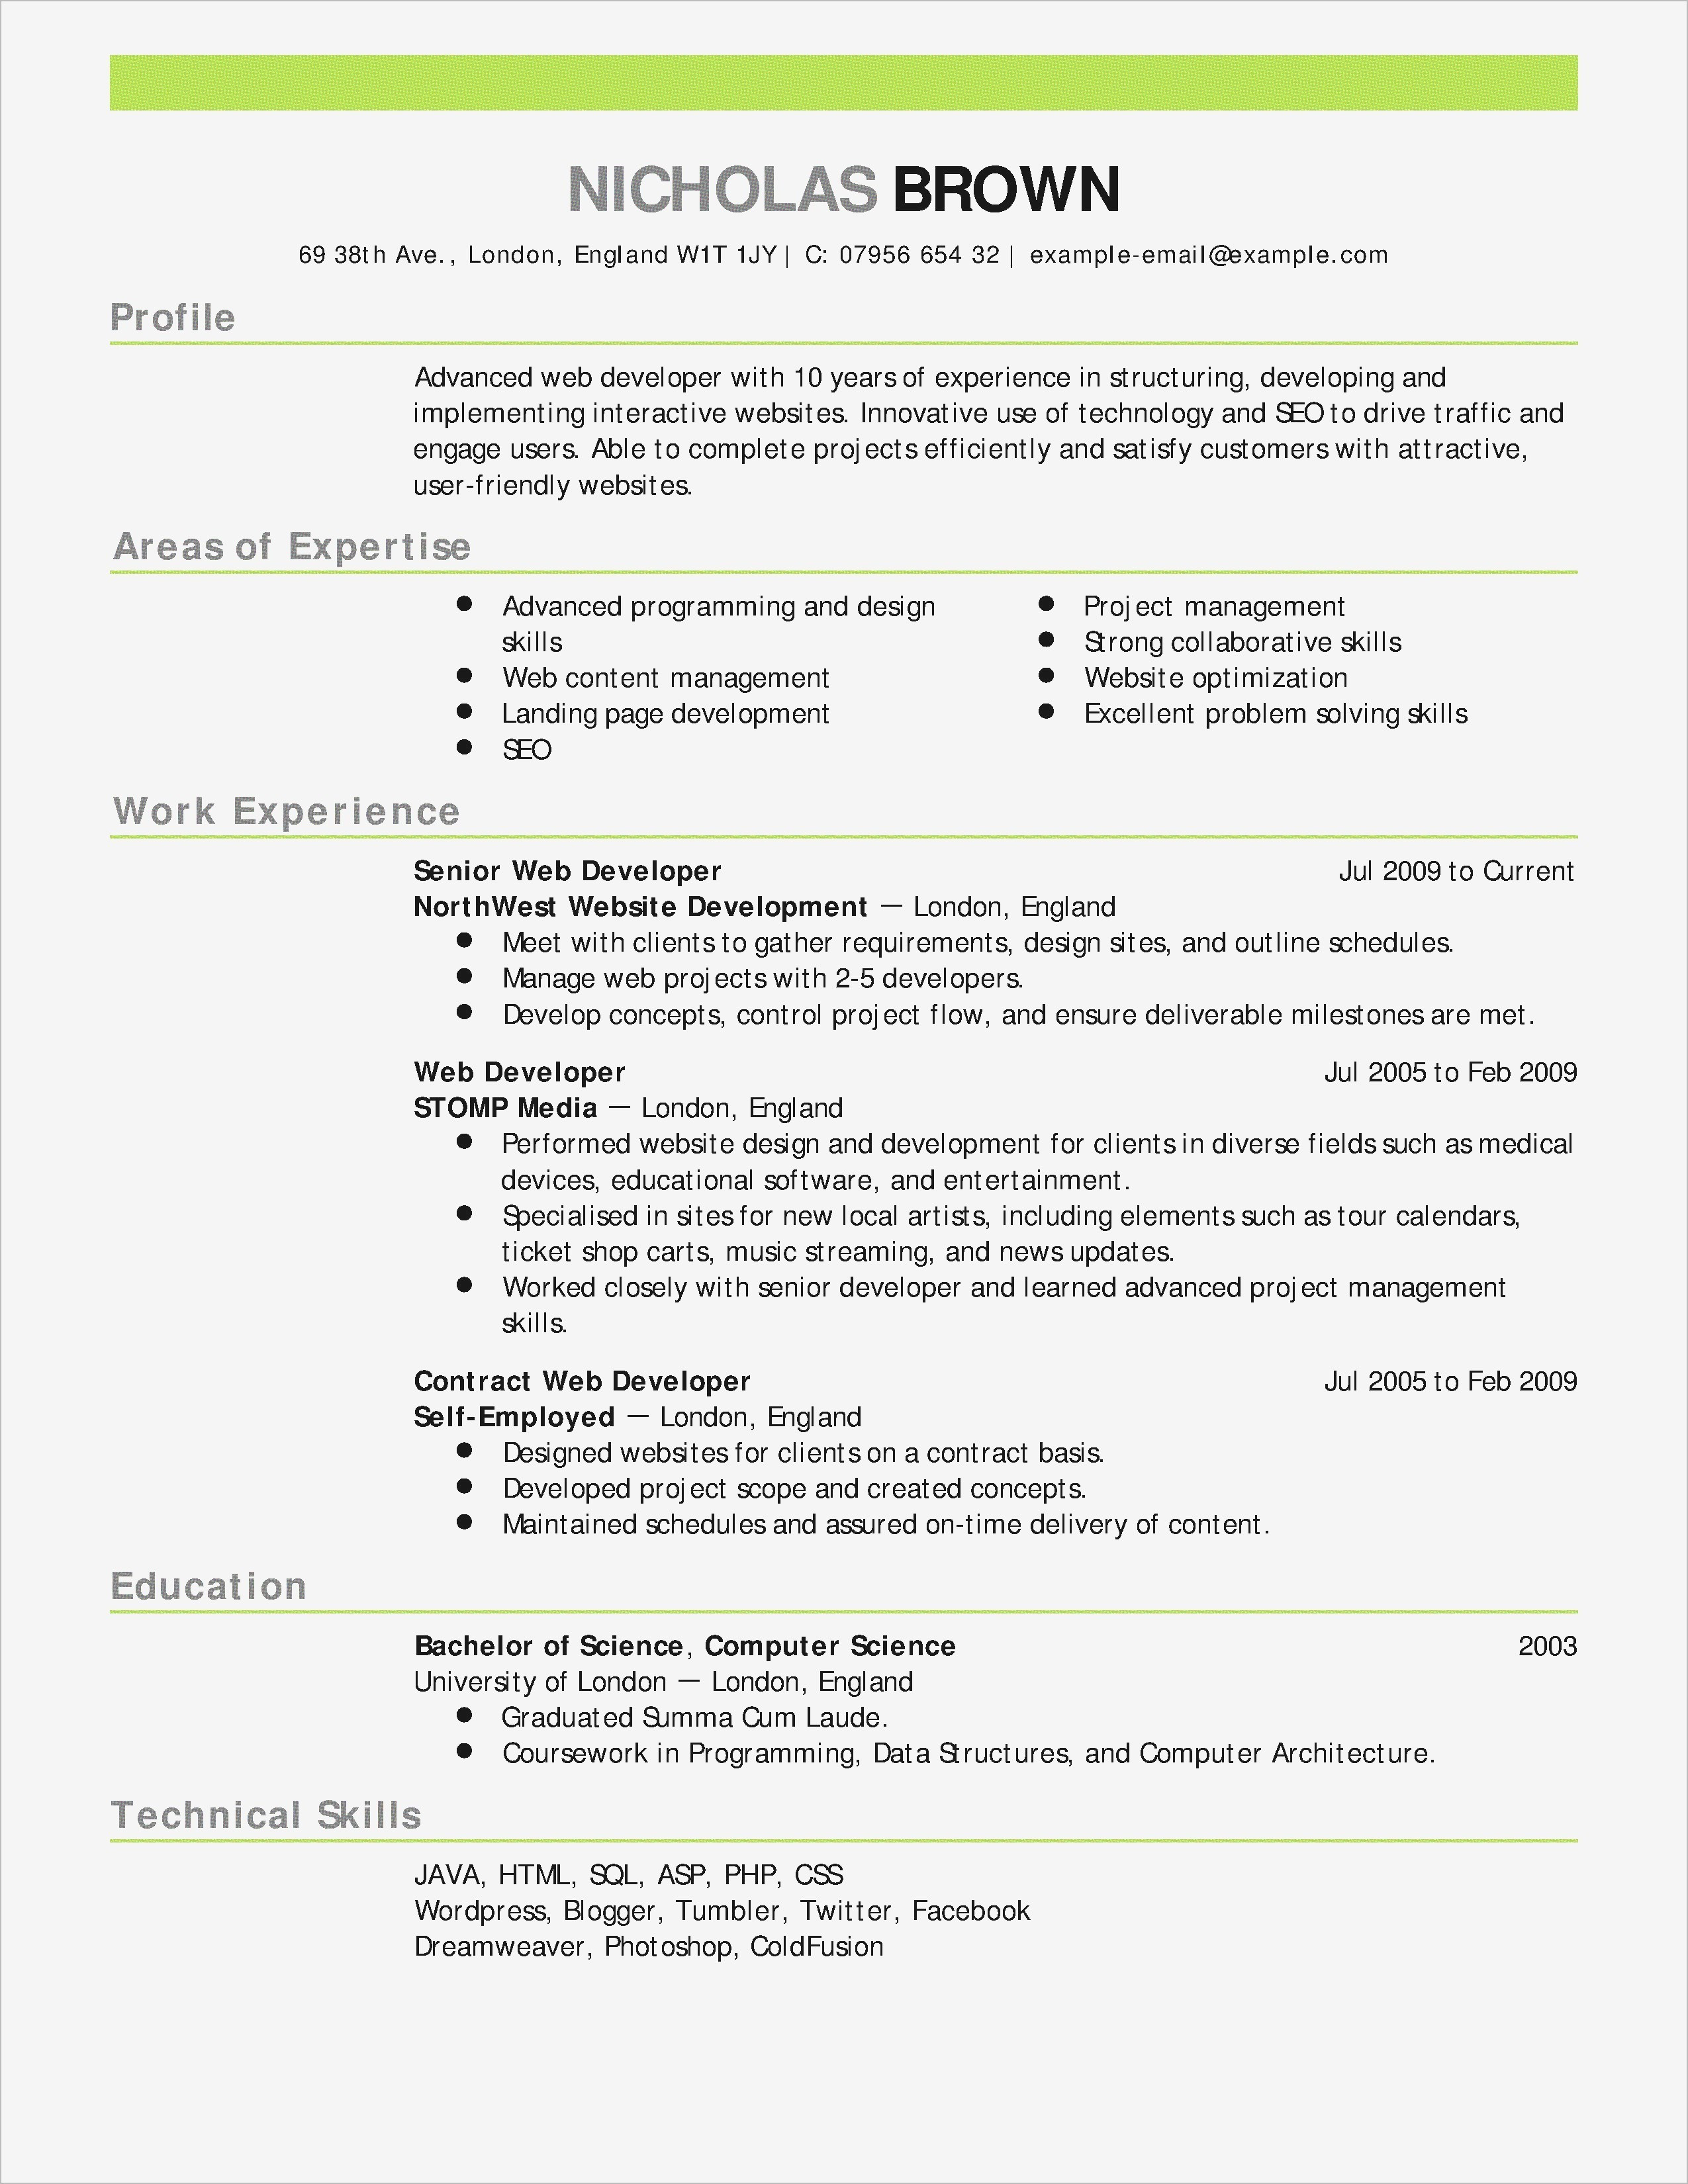 word 2003 resume template Collection-Elegant Free Resume Template for Word 5-a